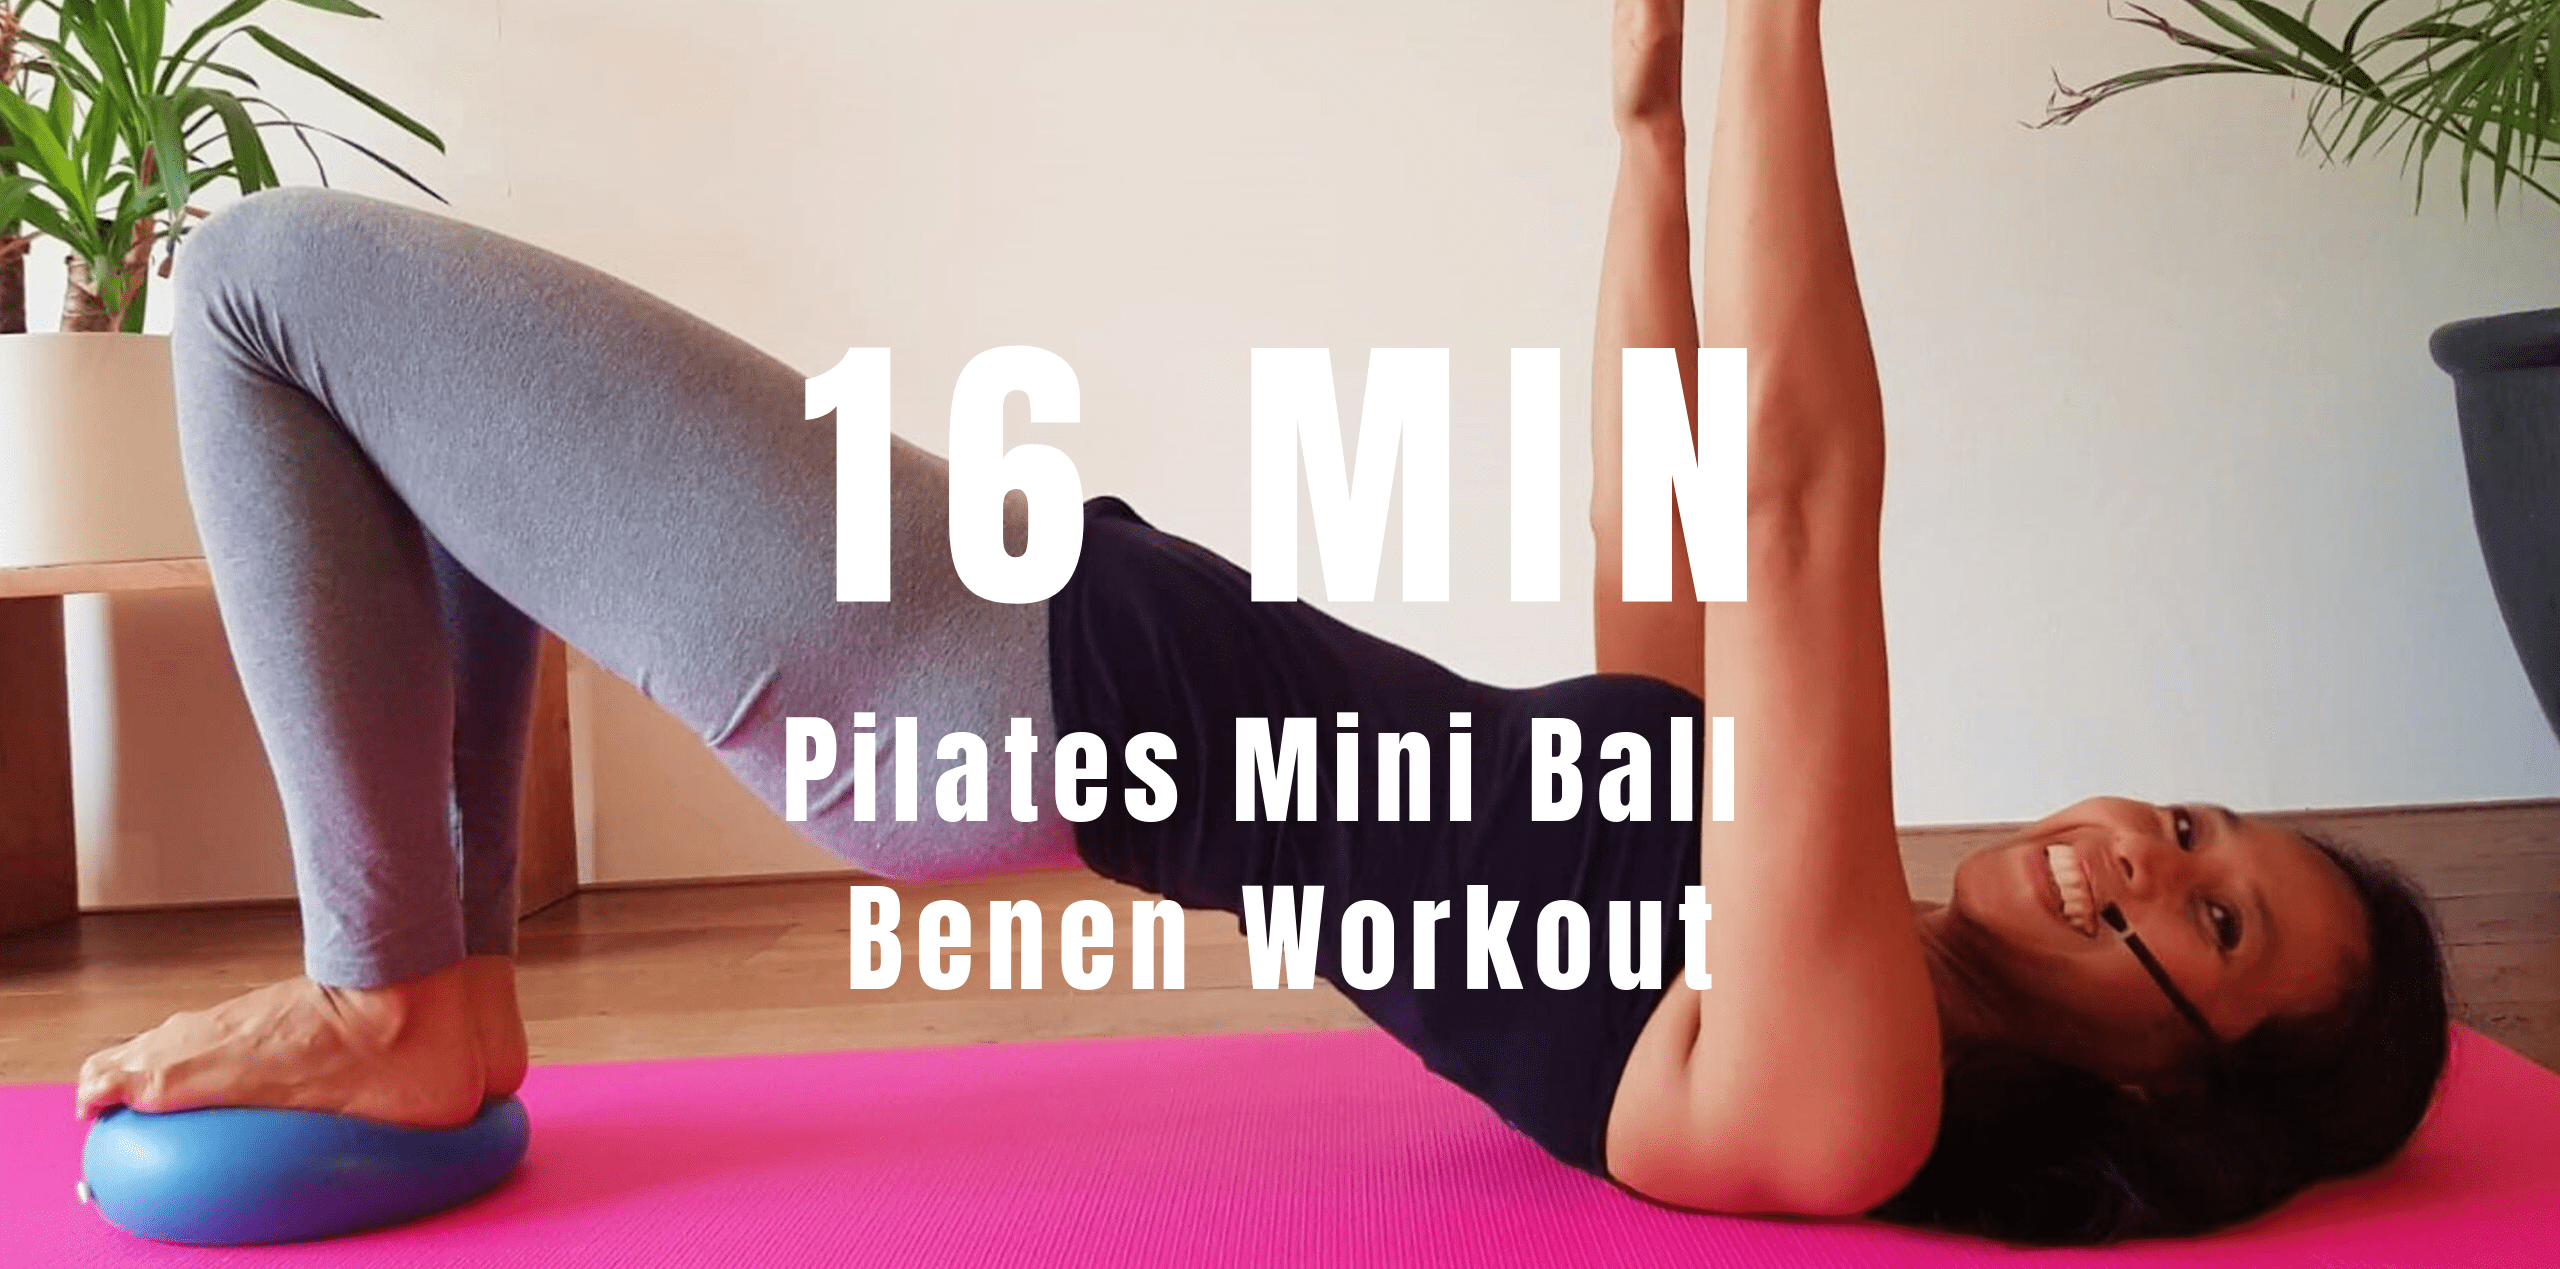 Pilates mini ball benen workout | strongbody.nl